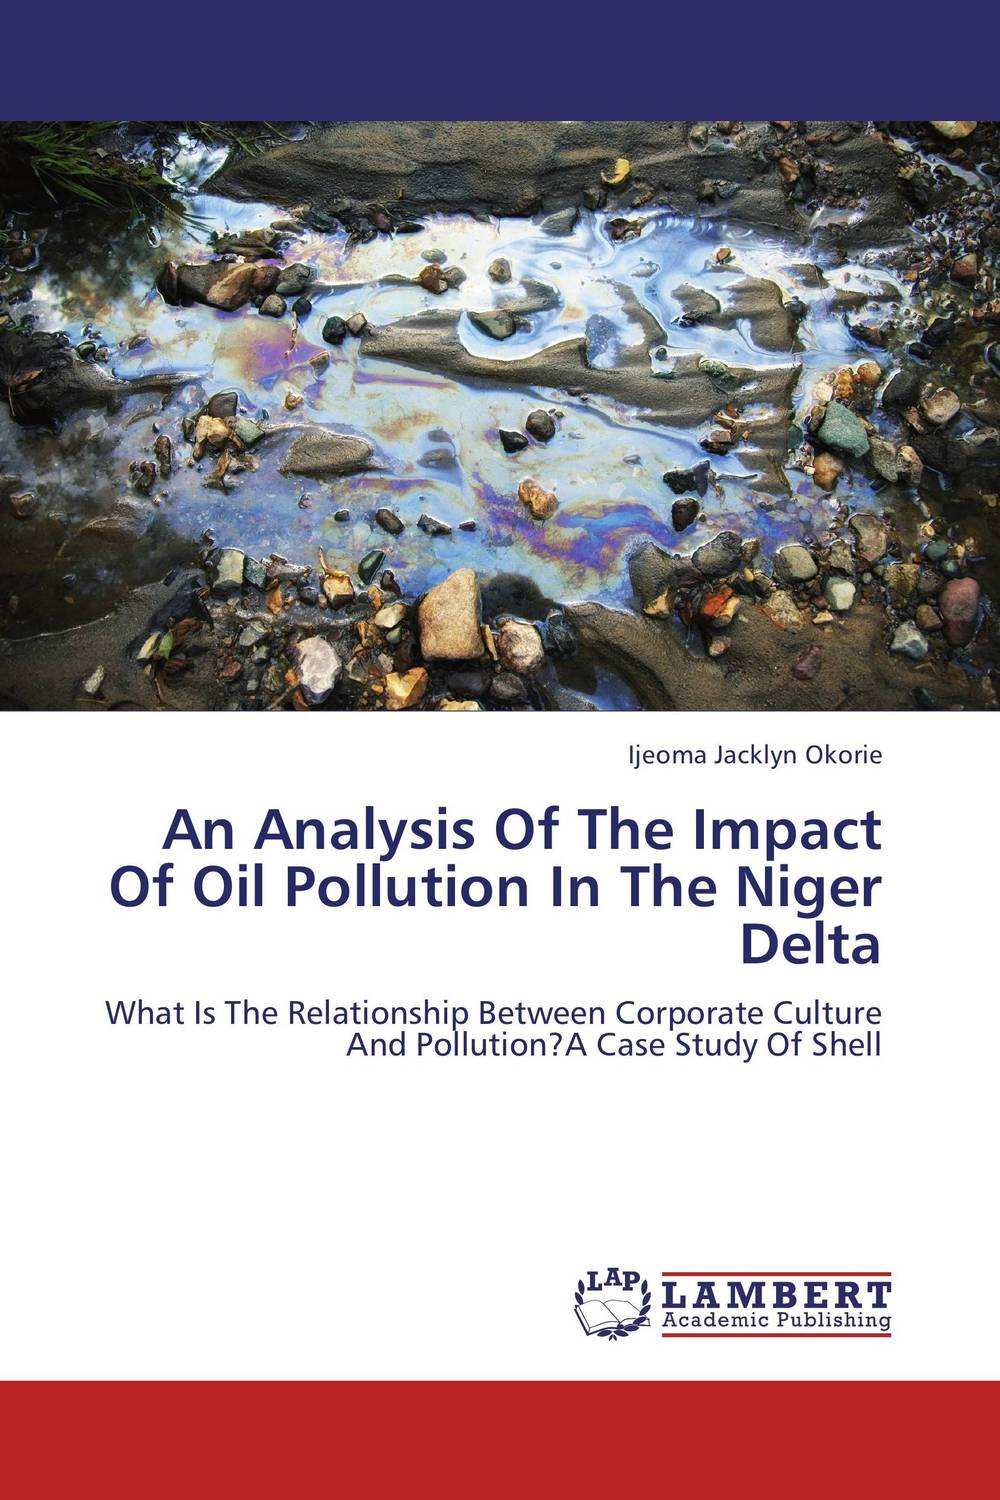 An Analysis Of The Impact Of Oil Pollution In The Niger Delta